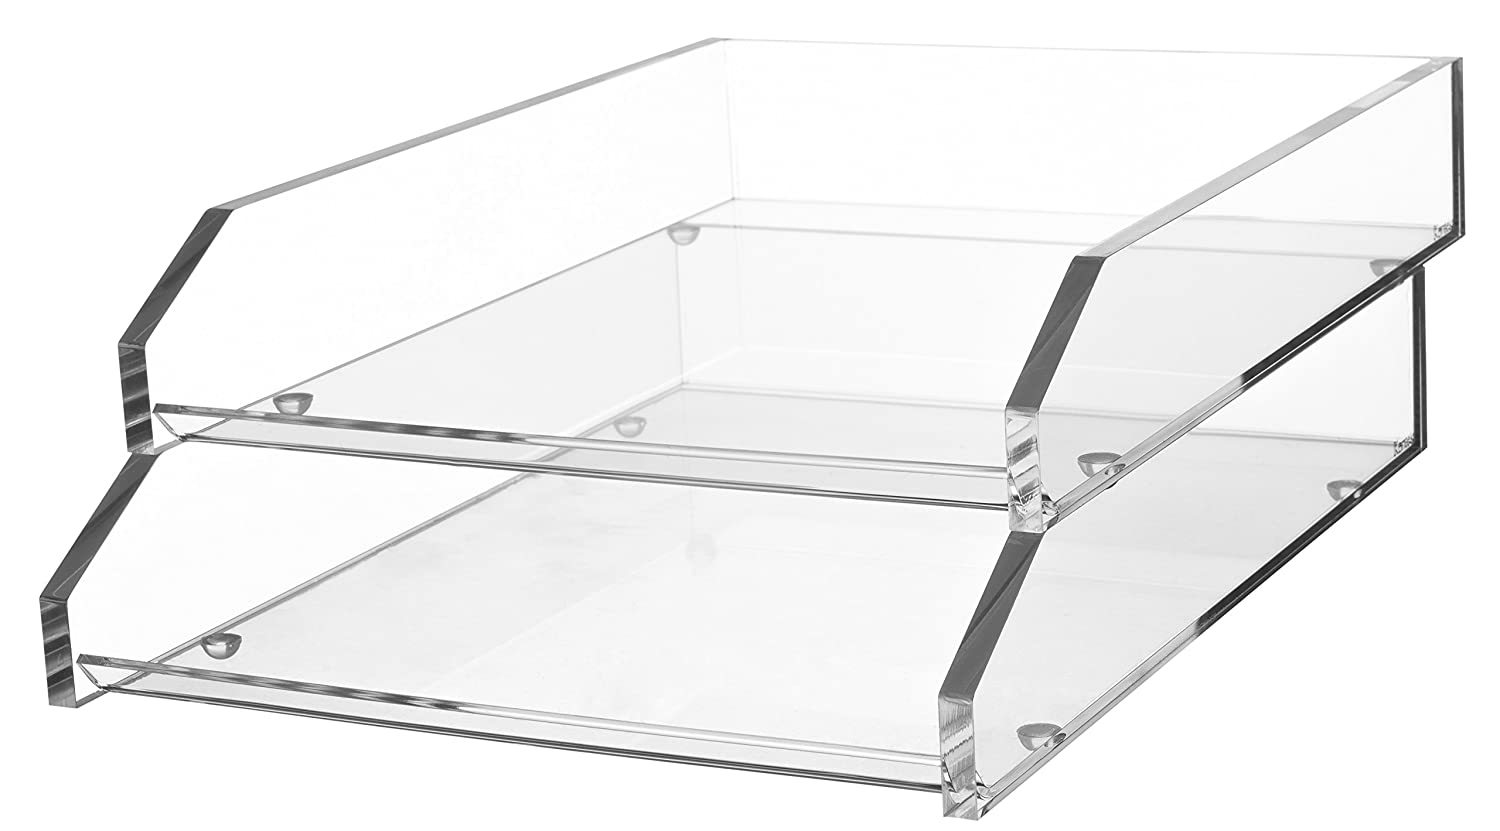 Kantek Acrylic Double Letter Tray, 10.6-Inch Wide x 13.9-Inch Deep x 4.8-Inch High, Clear (AD15)